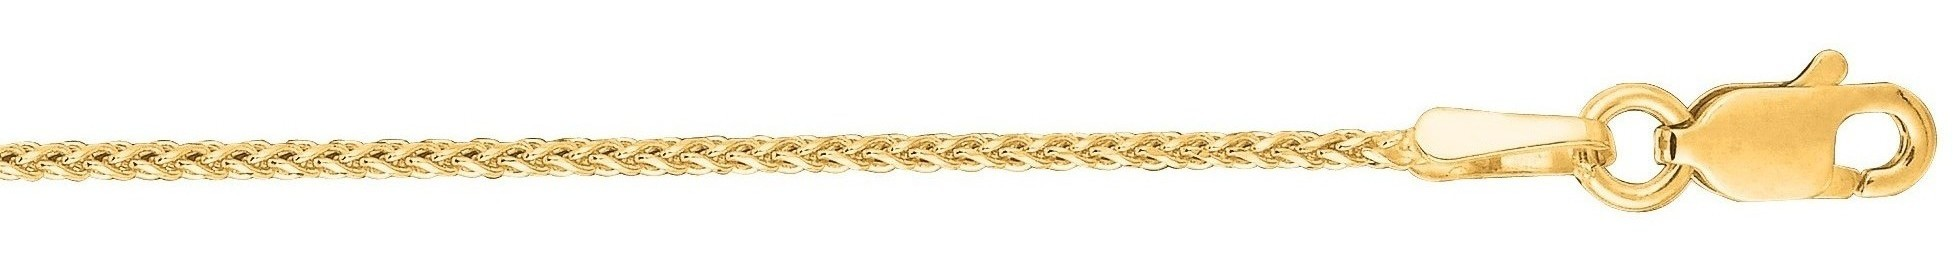 "18"" 14K Yellow Gold 1.1mm (0.04"") Polished Round Diamond Cut Wheat Chain w/ Lobster Clasp"